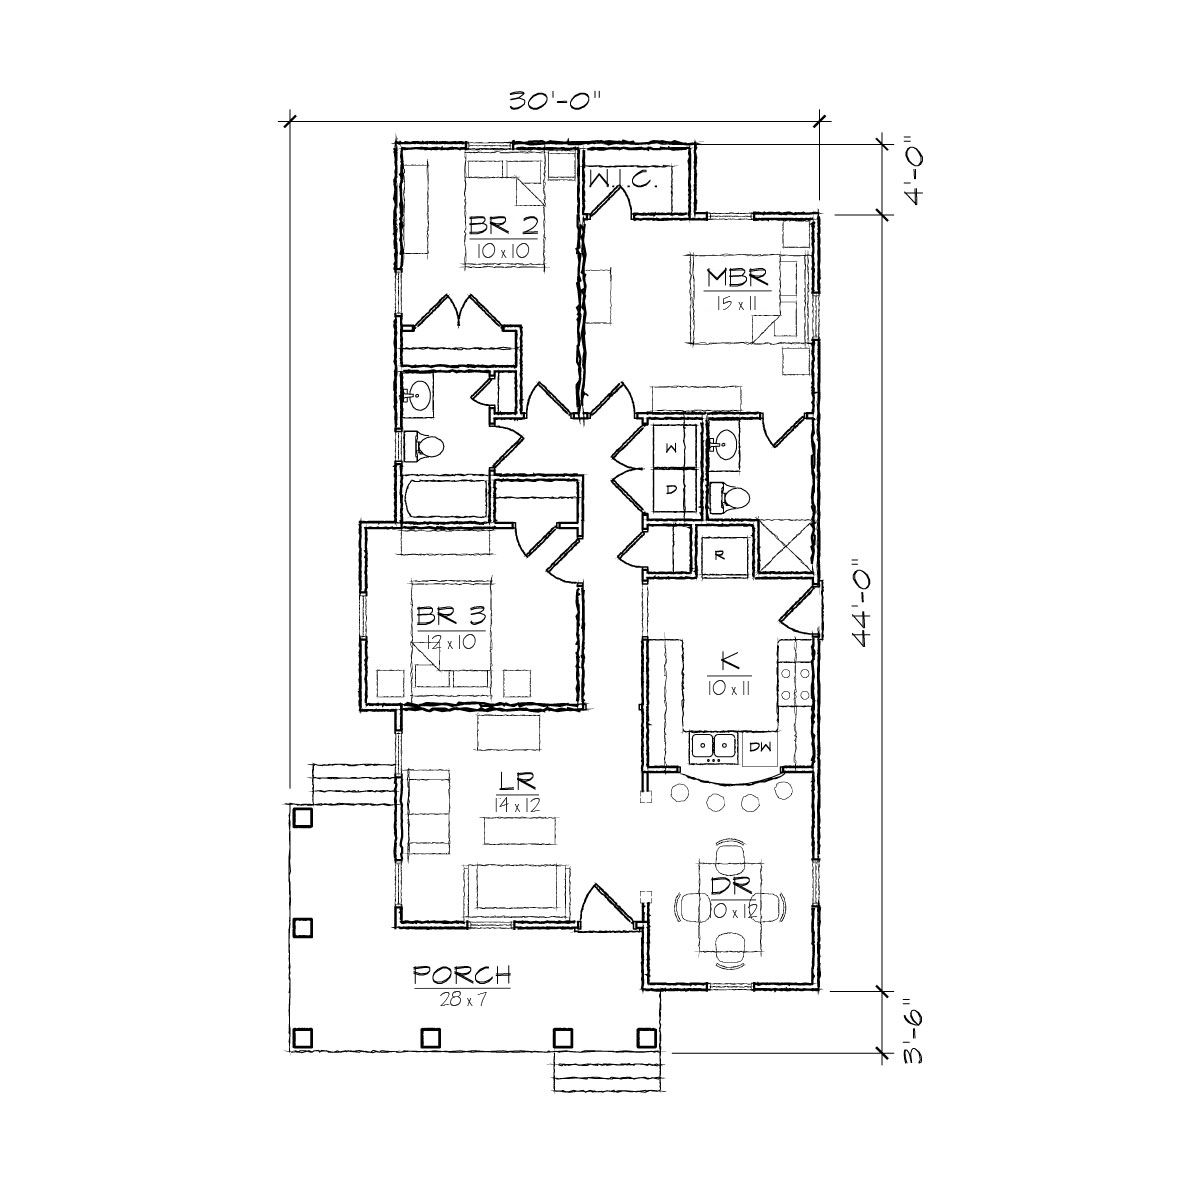 small spanish floor plans juniper i bungalow floor plan - Bungalow Floor Plans